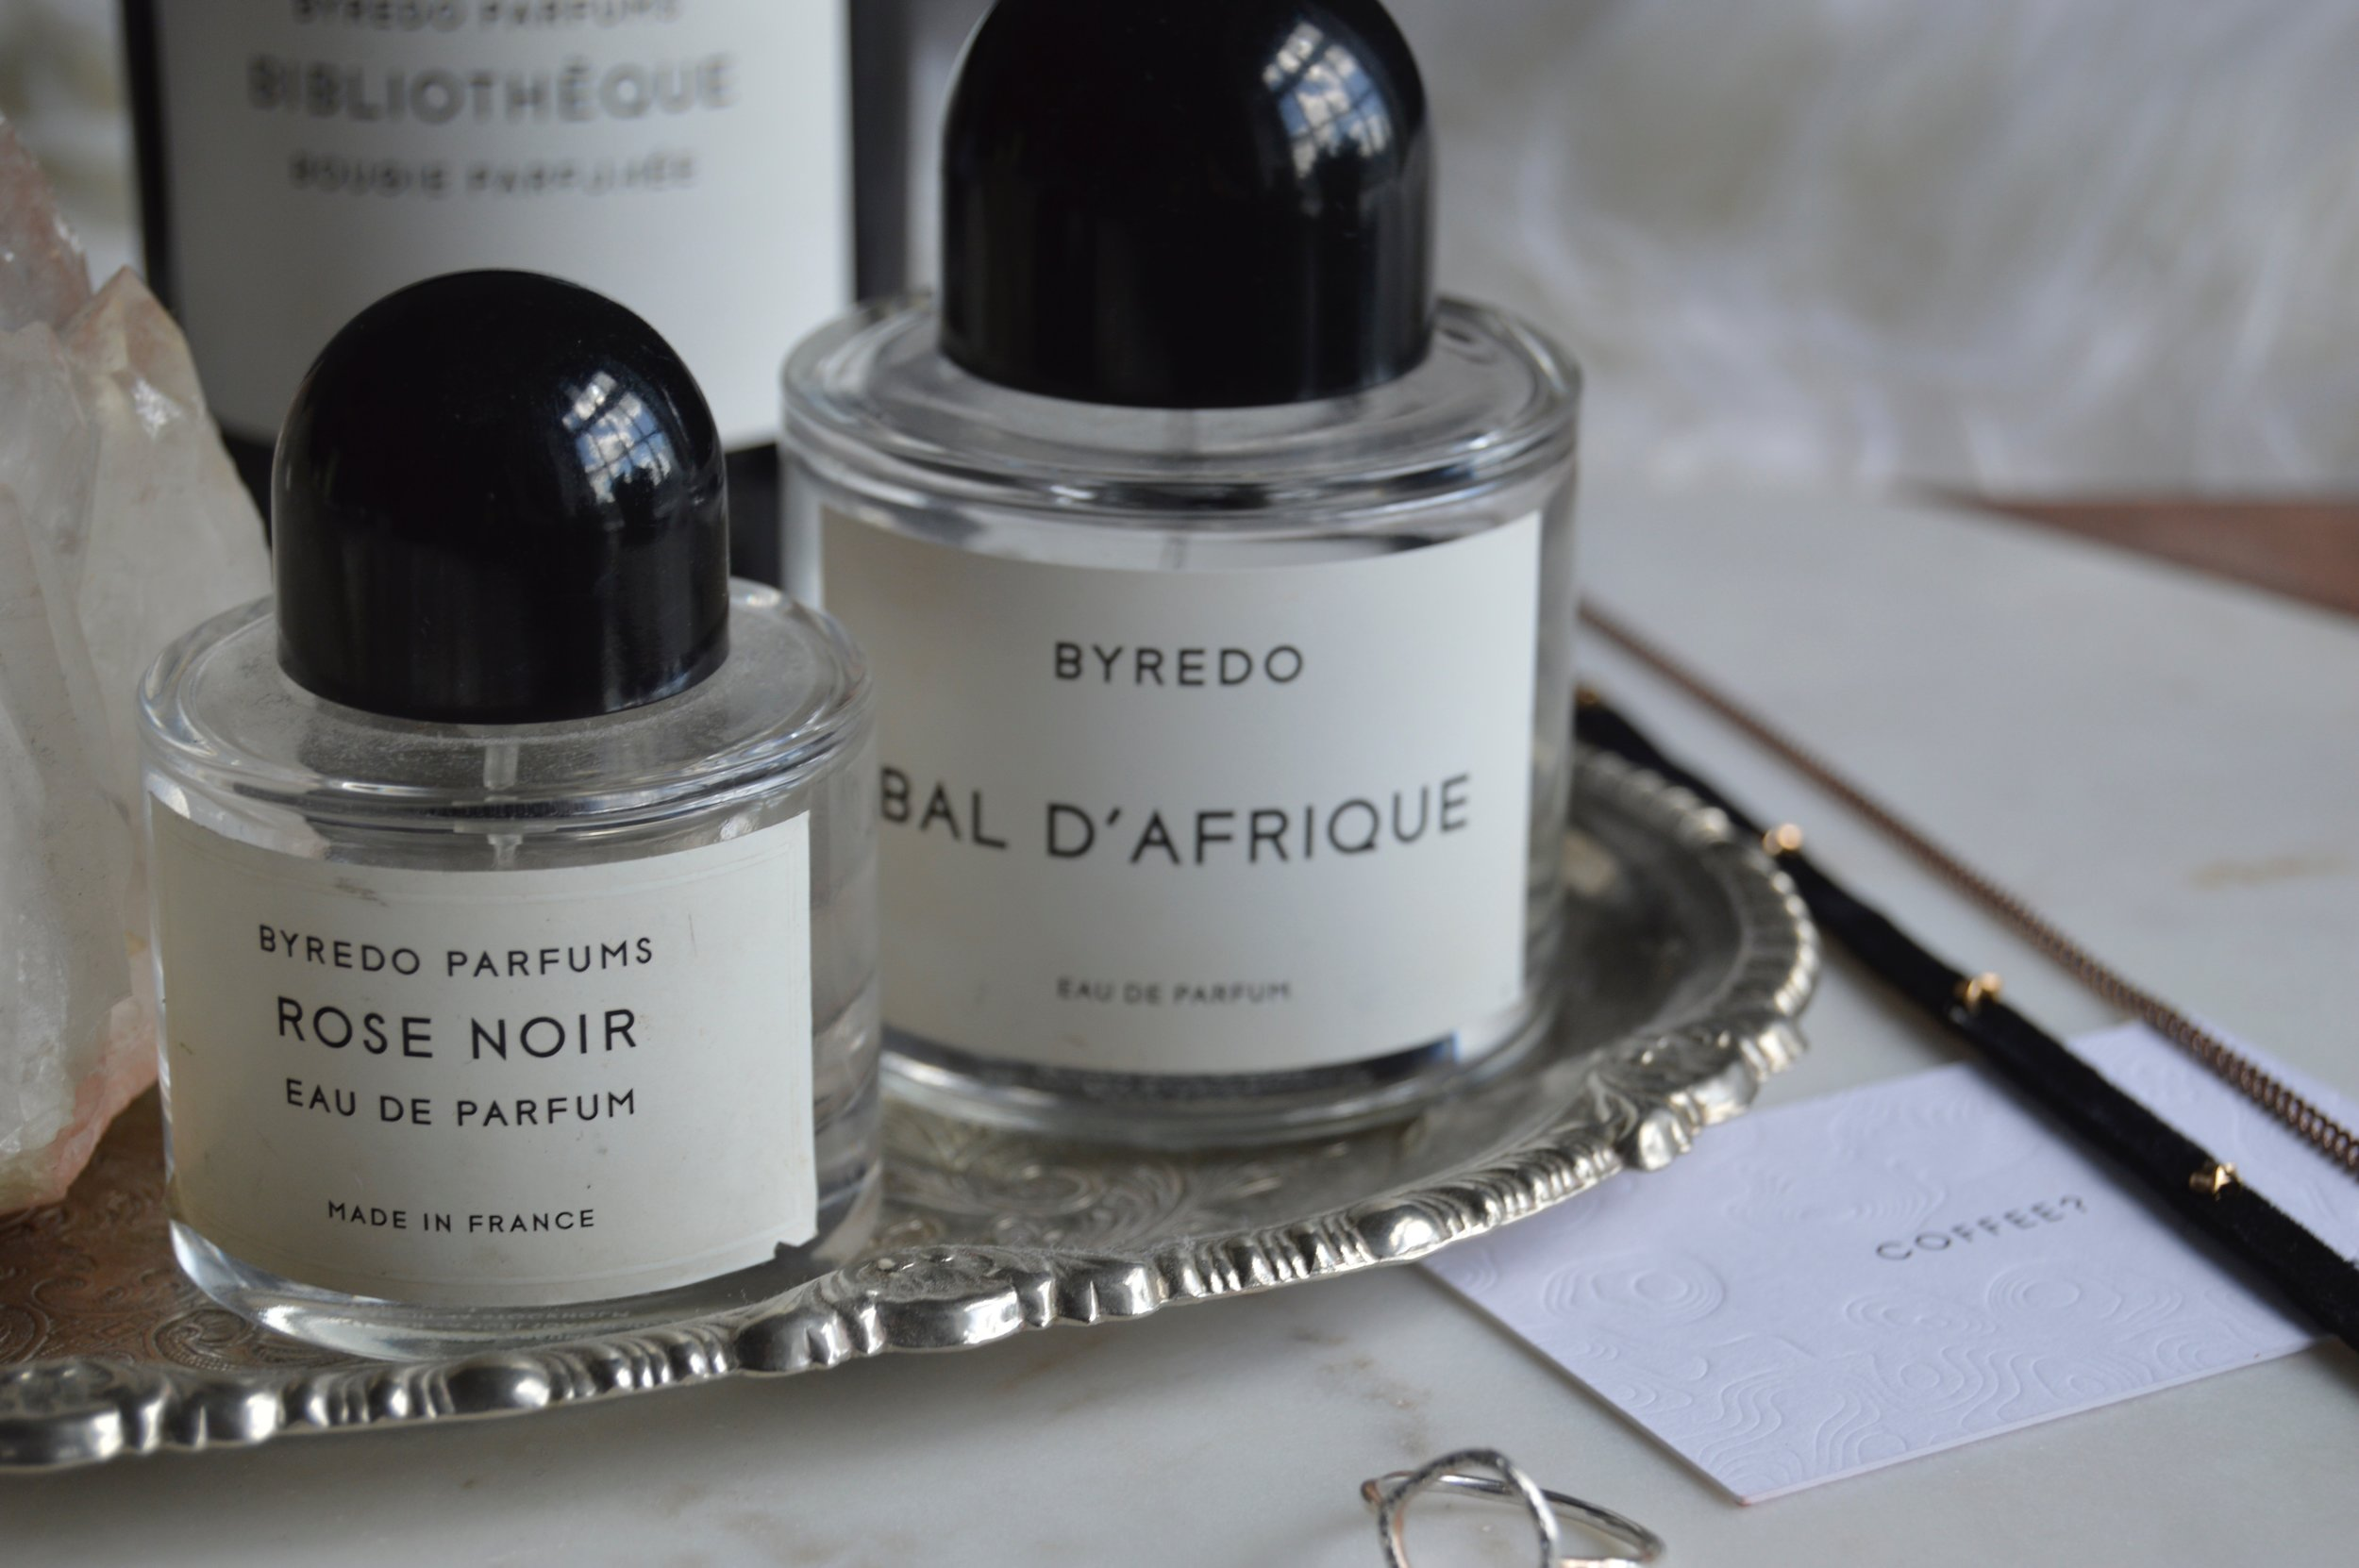 Byredo Perfumes and Candle, Beauty Blogger Review